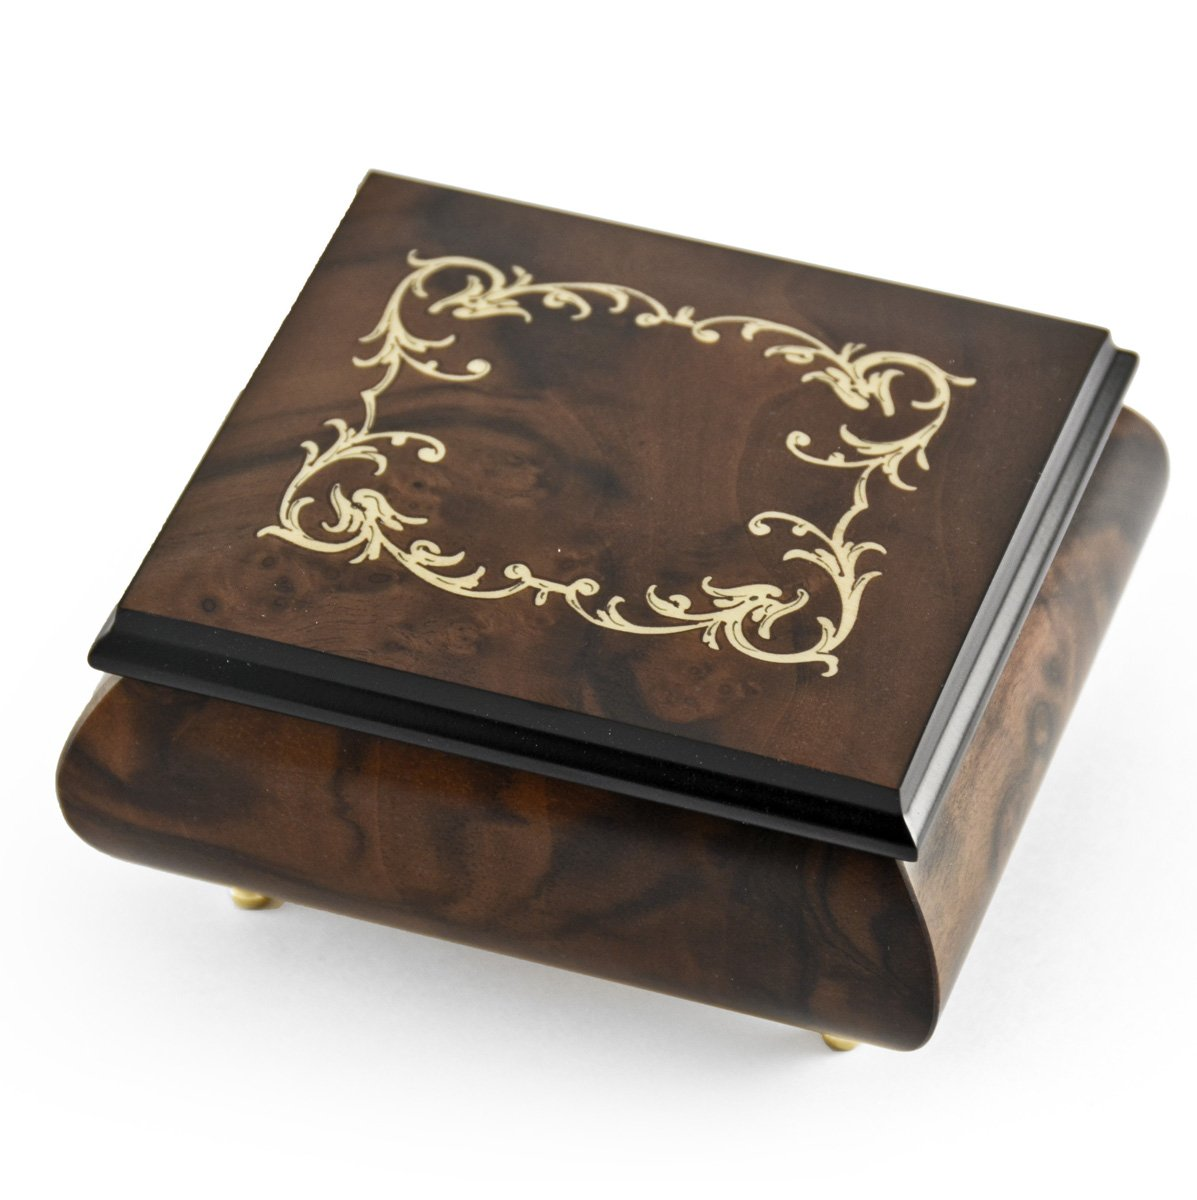 Small Musical Jewelry Box for Women - Artistic Burl Wood Jewelry Organizer Case with Compartment, Travel Jewelry Case with Music, 380+ Songs Selection - Perfect Gift for Mother's Day